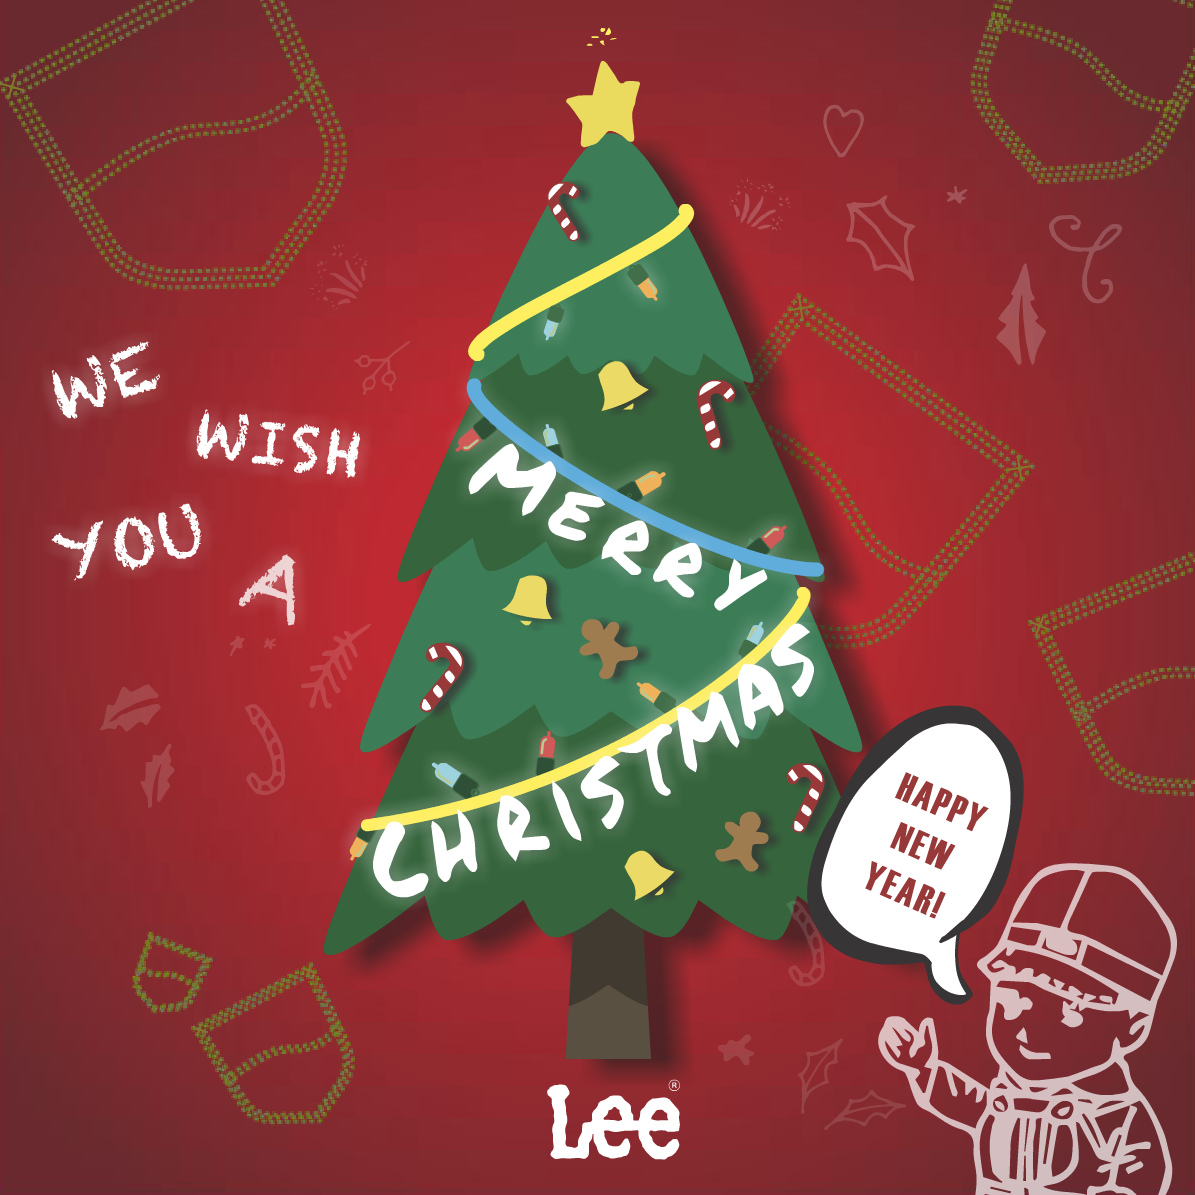 Lee-Christmax-e-card